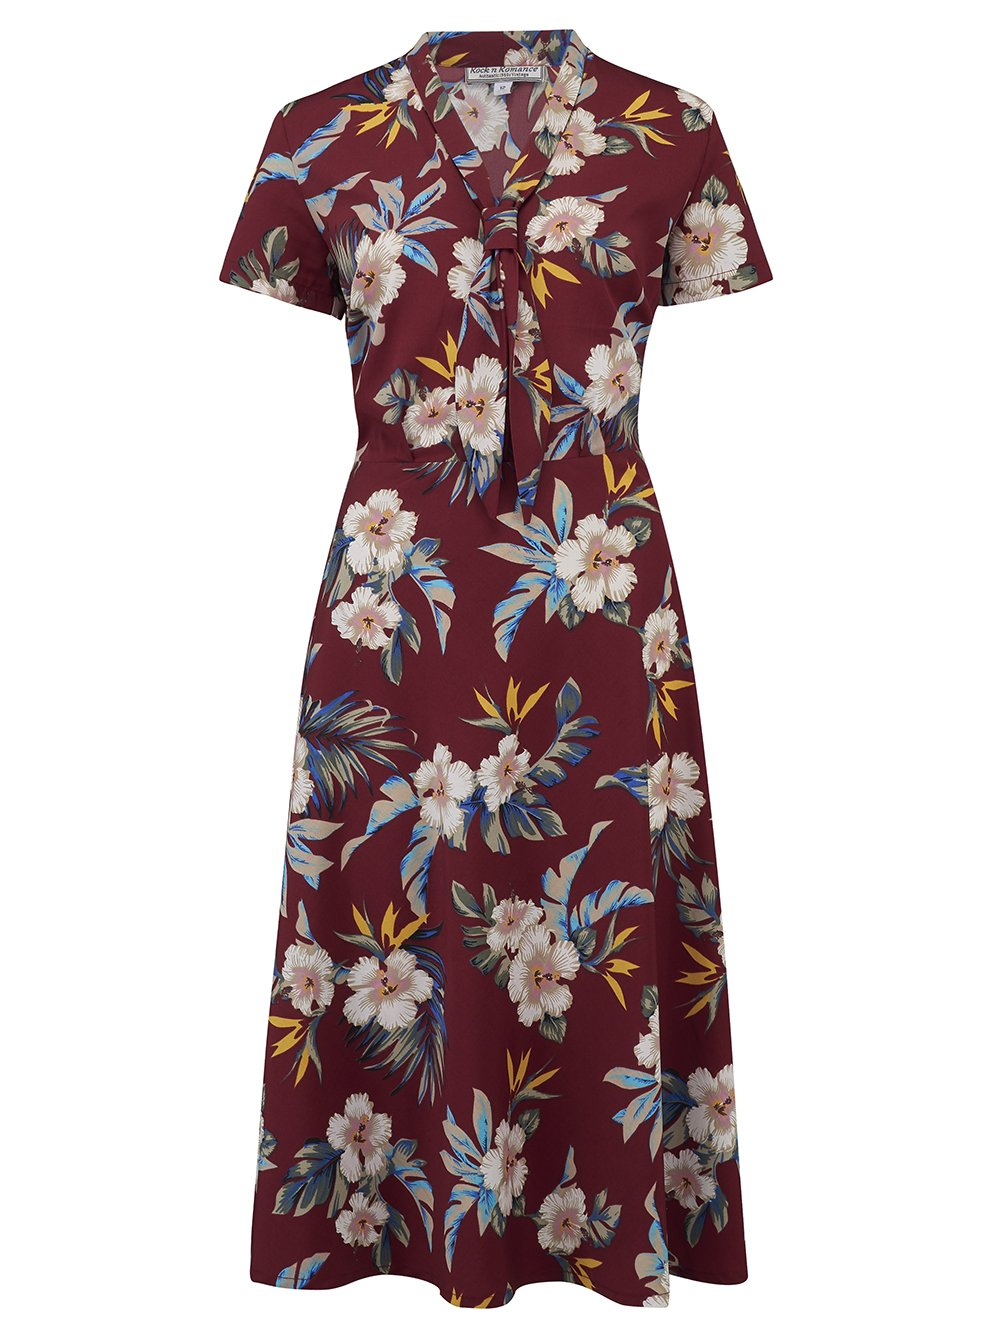 500 Vintage Style Dresses for Sale | Vintage Inspired Dresses Sample Sale Jean Tea Dress in Wine Hawaiian Print Perfect 1950s Tiki Style £25.00 AT vintagedancer.com